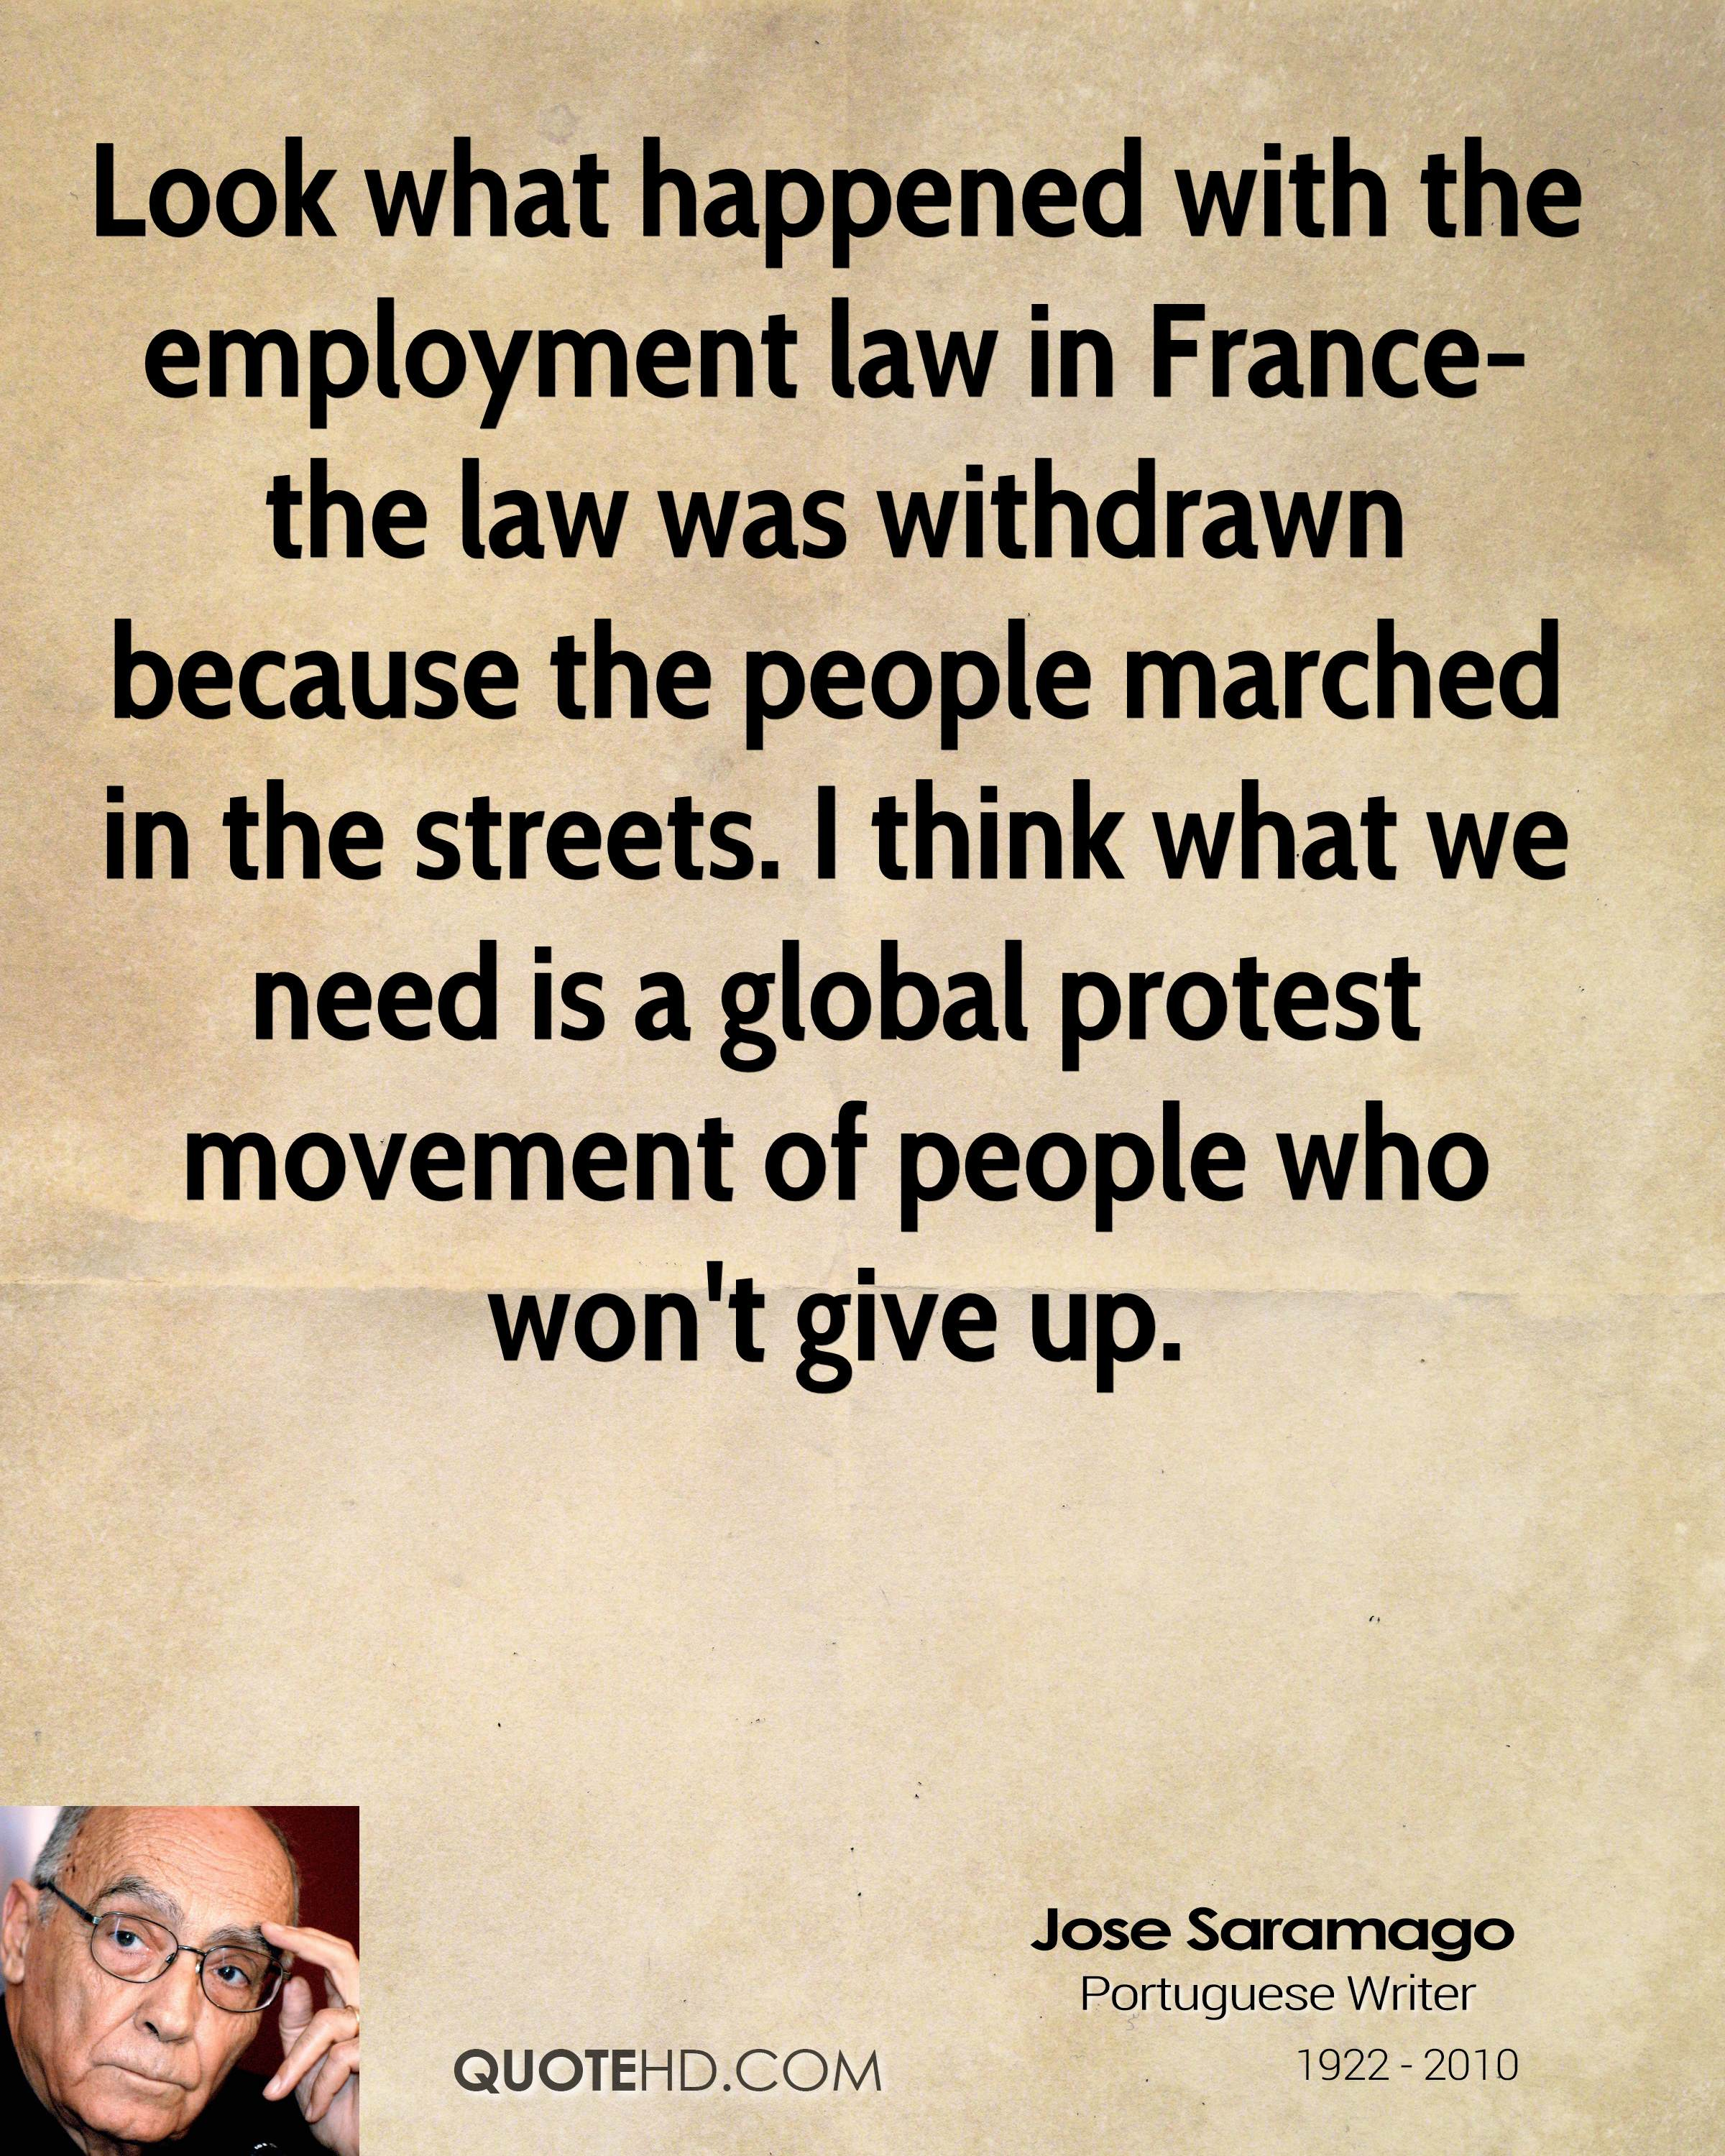 Look what happened with the employment law in France-the law was withdrawn because the people marched in the streets. I think what we need is a global protest movement of people who won't give up.